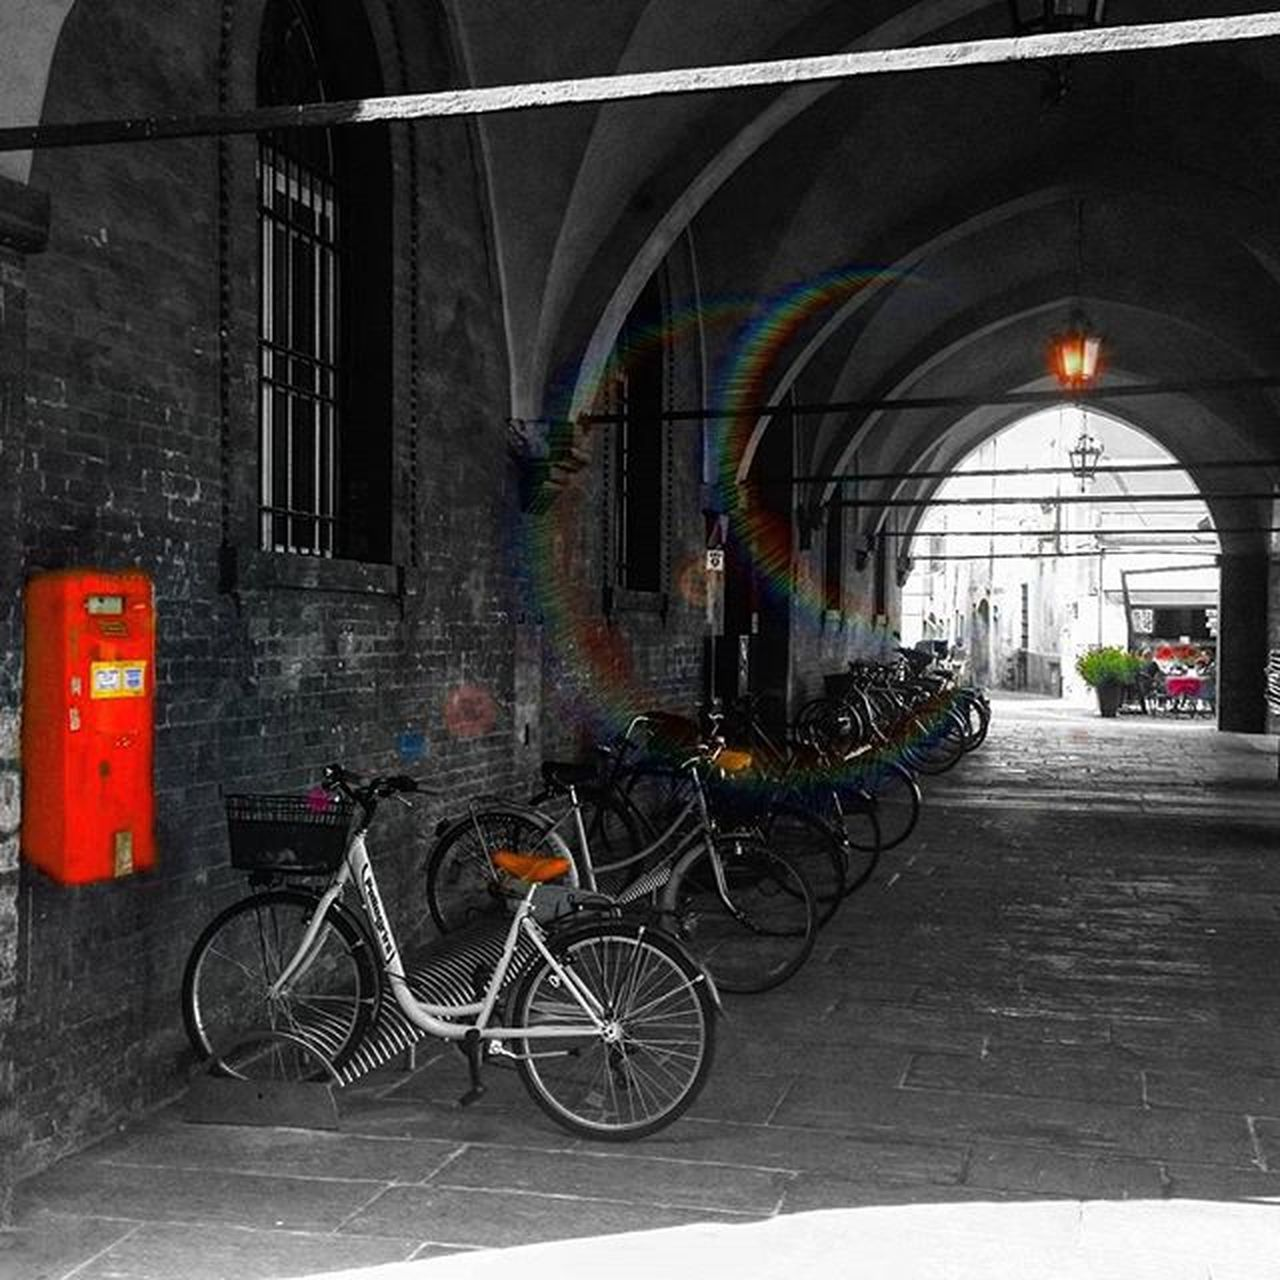 bicycle, transportation, architecture, built structure, mode of transport, land vehicle, stationary, day, no people, indoors, building exterior, city